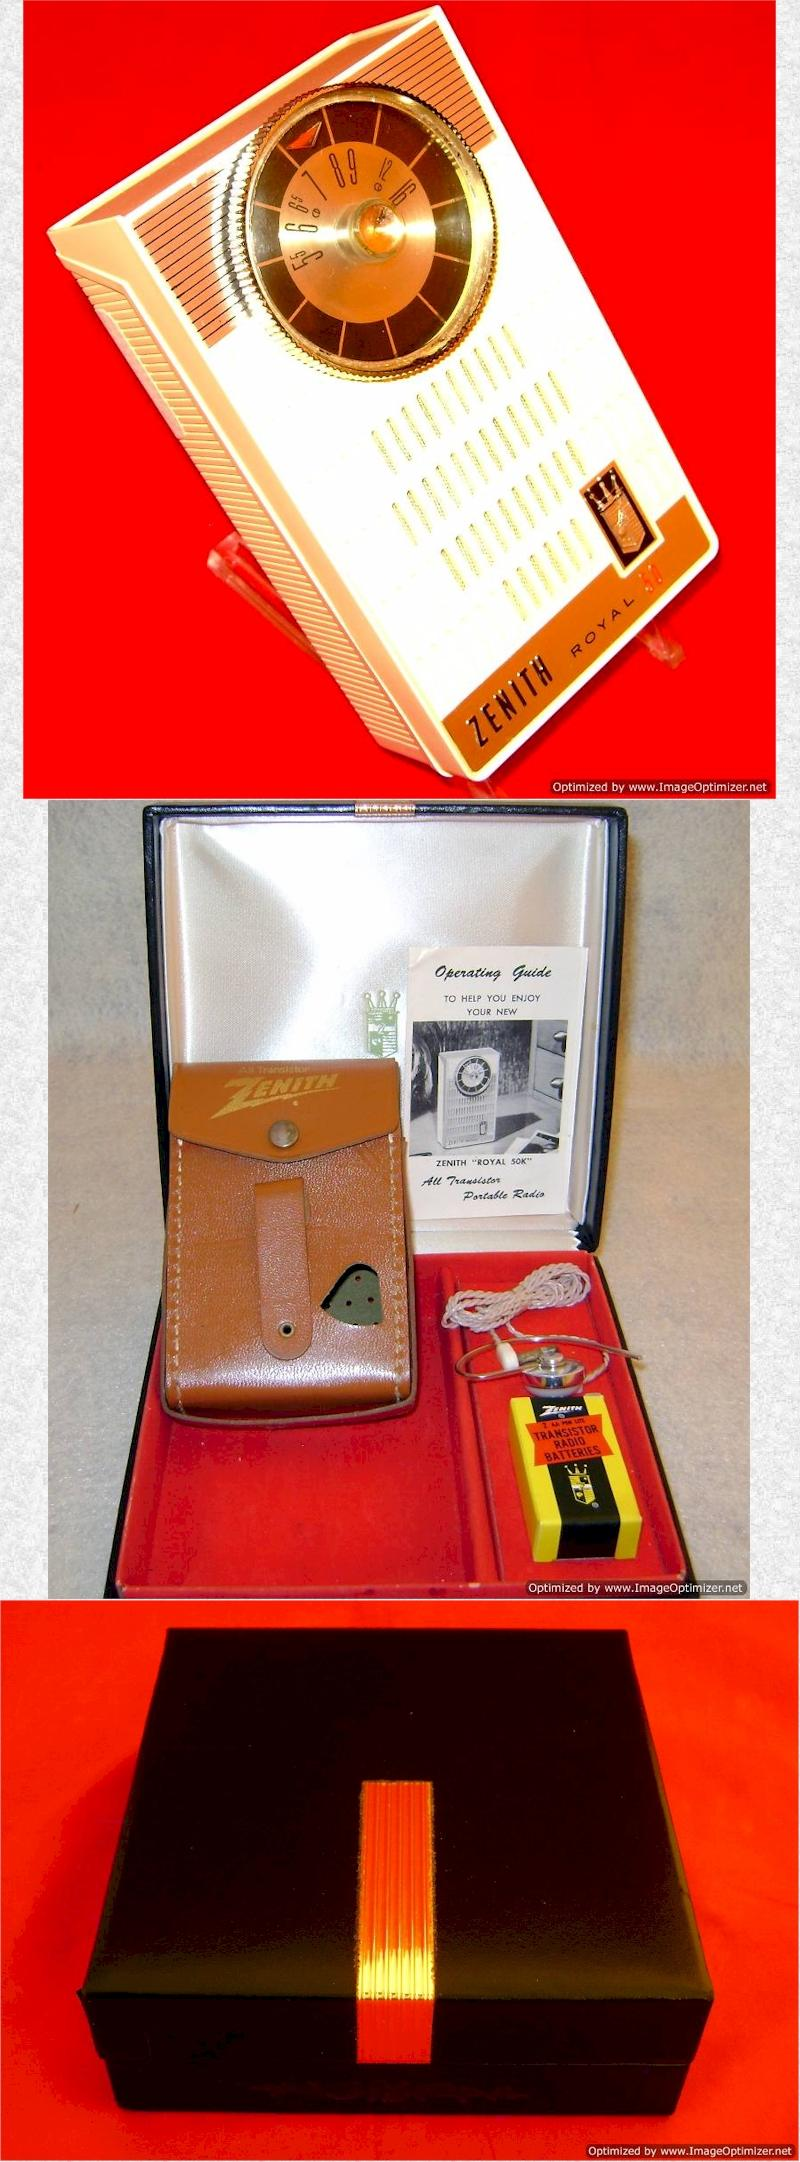 Zenith Royal 50WK Gift Set (1961)